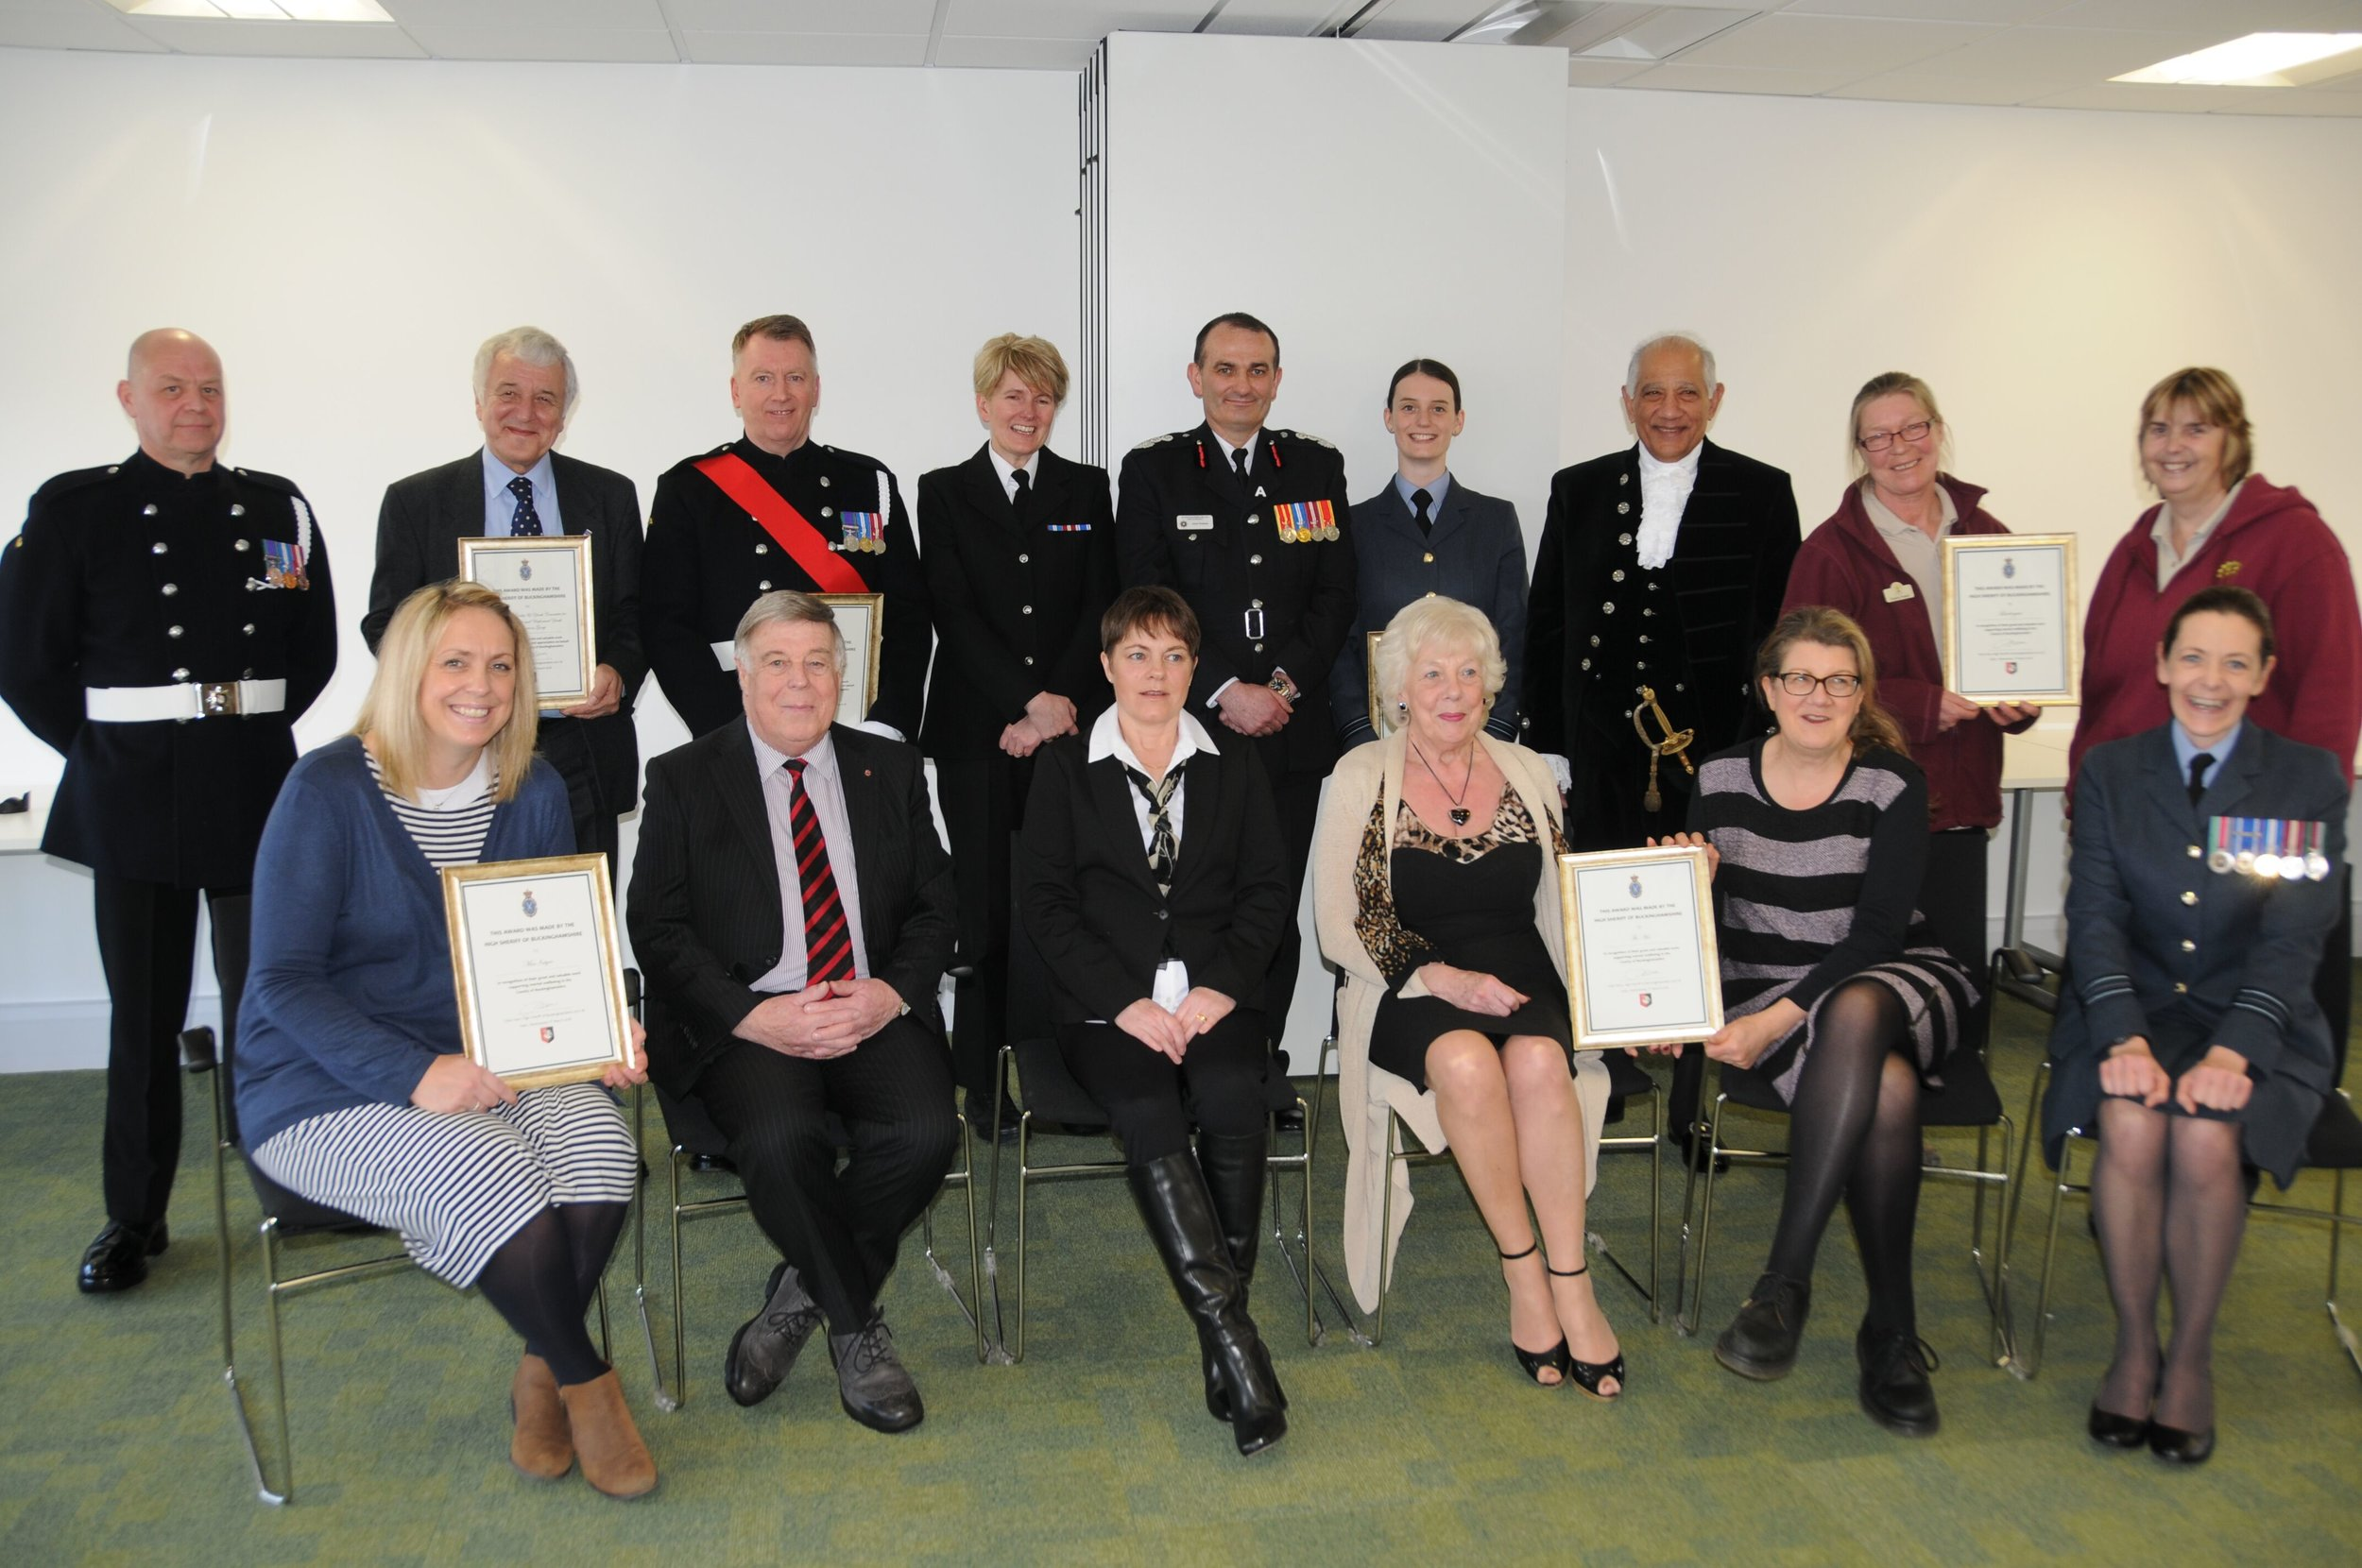 Mel and Cynthia collecting the High Sheriff of Buckinghamshire Award ceremony on the 7th March